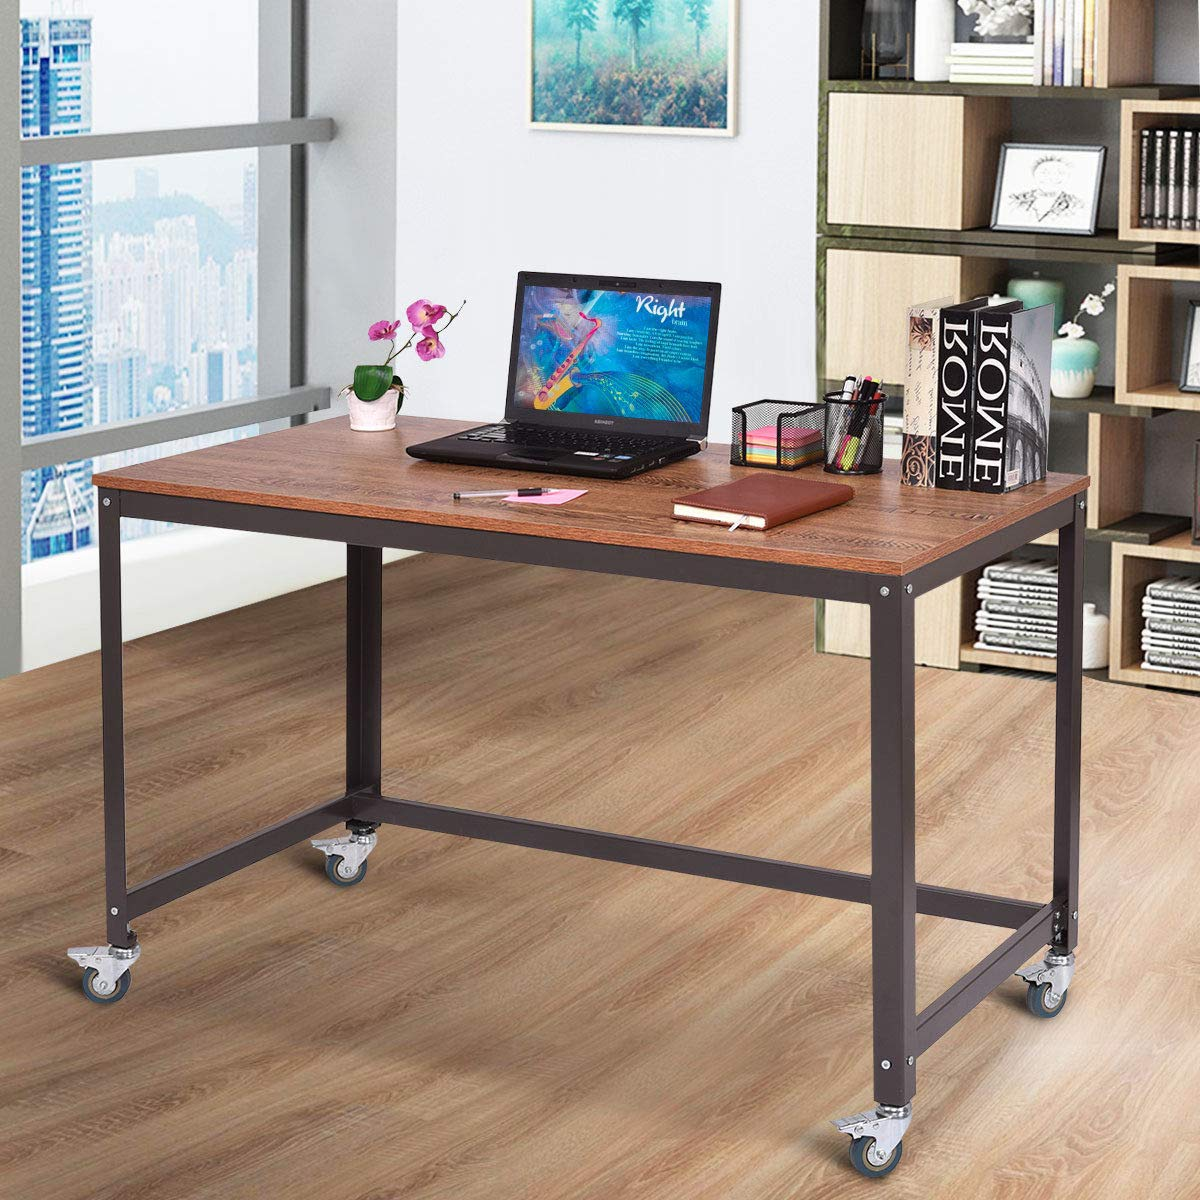 Tangkula computer desk wood portable compact simple style home office study table writing desk workstation with 4 smooth wheels home office collection